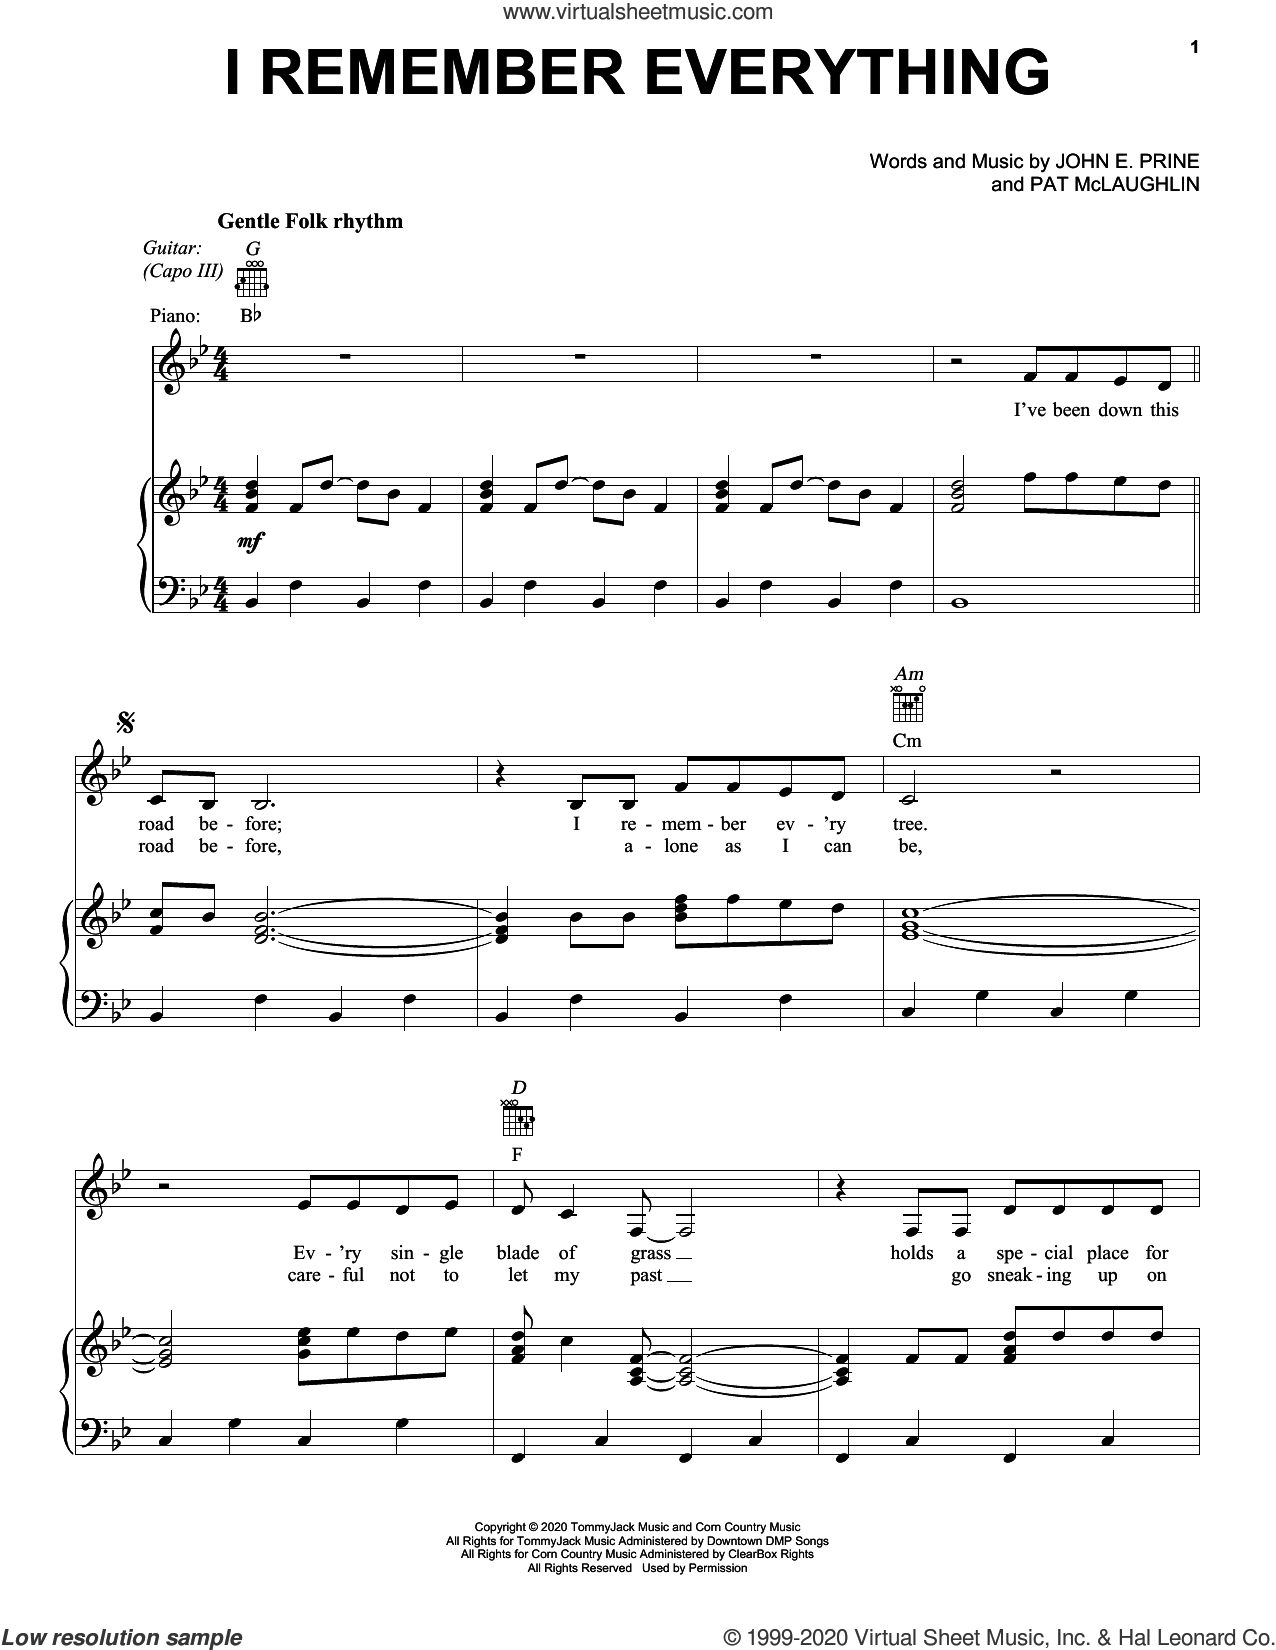 I Remember Everything sheet music for voice, piano or guitar by John Prine, John E. Prine and Pat McLaughlin, intermediate skill level